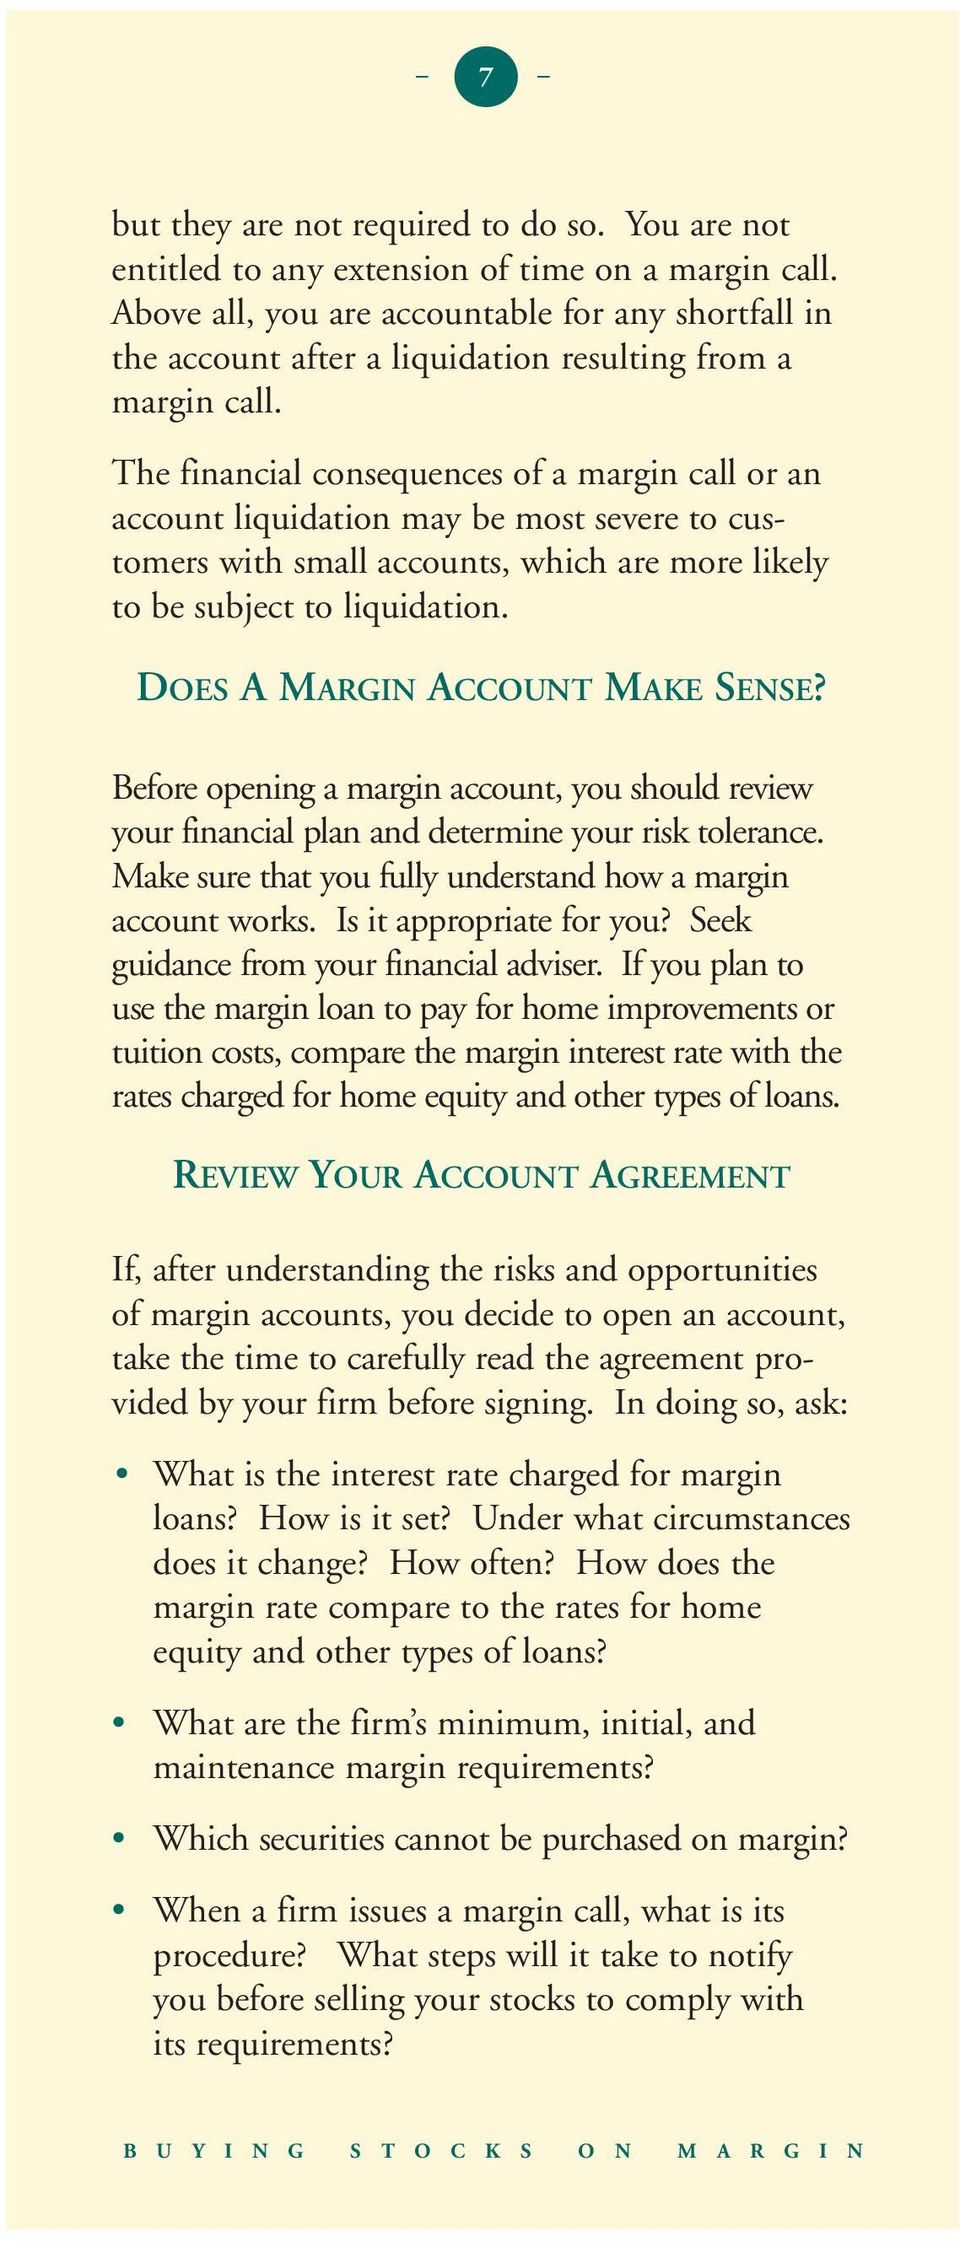 The financial consequences of a margin call or an account liquidation may be most severe to customers with small accounts, which are more likely to be subject to liquidation.